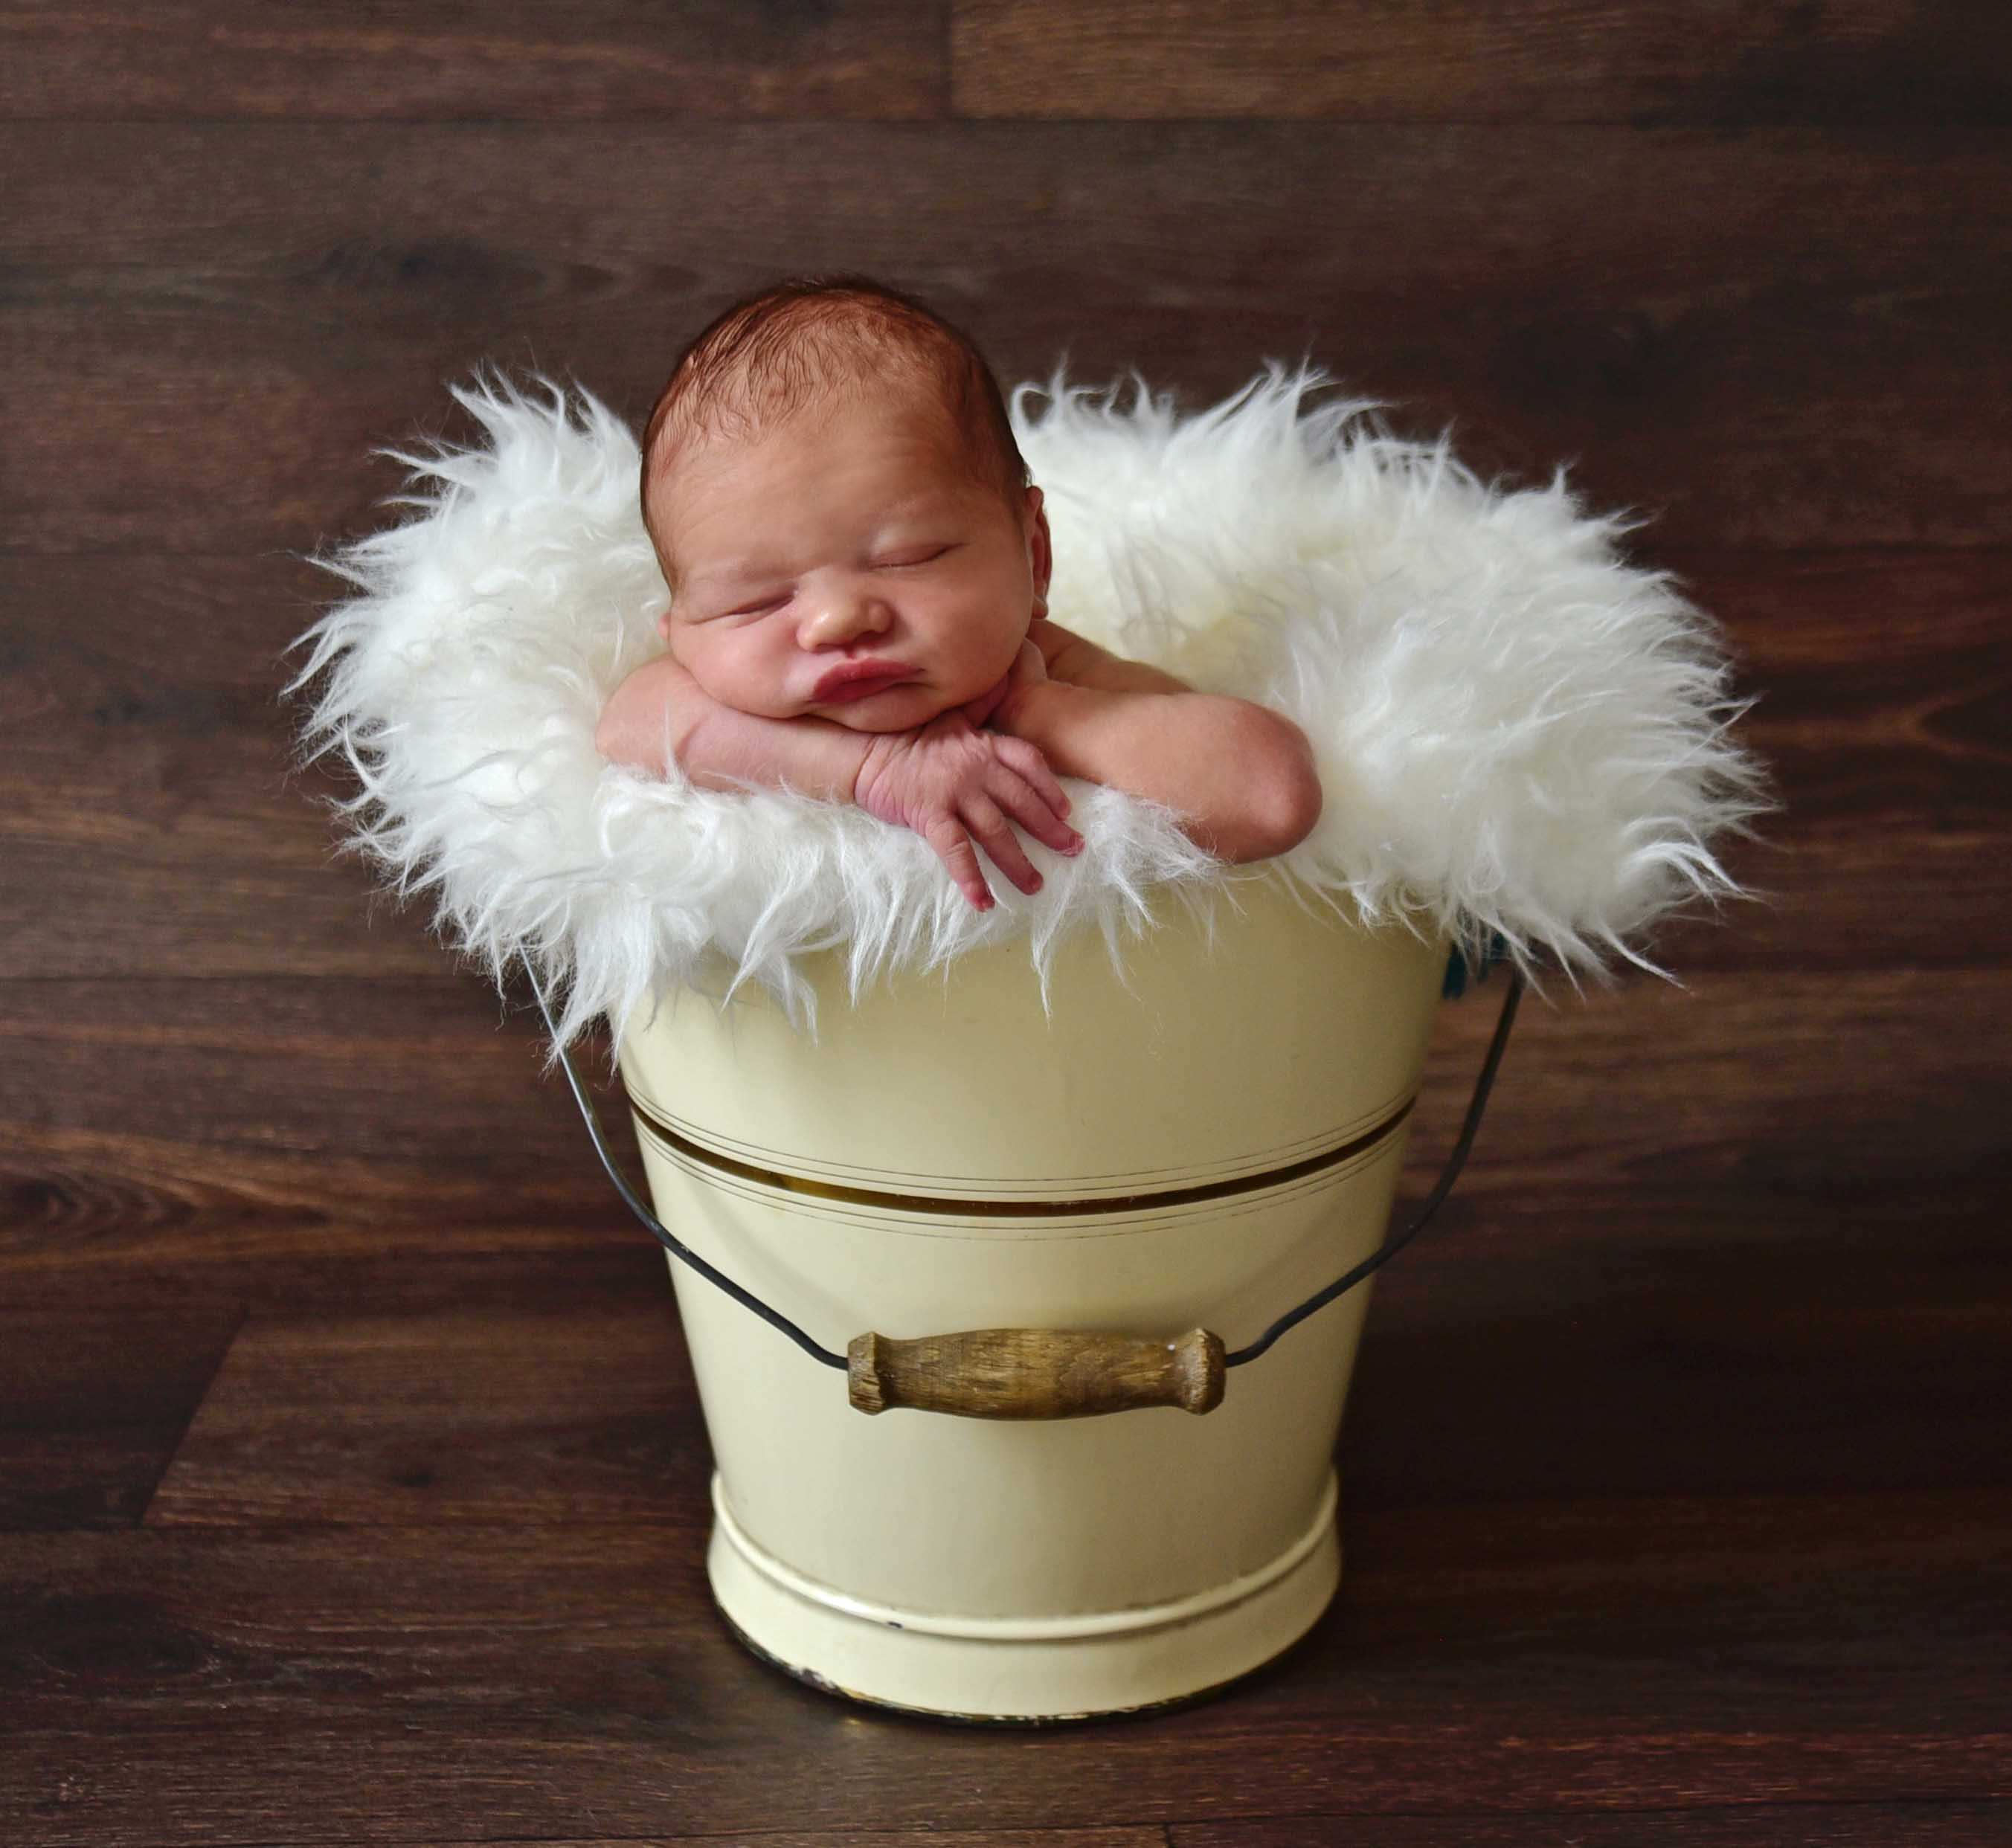 Baby Portraits, Newborn baby Photography, Michelle Nyulassie, East Sussex